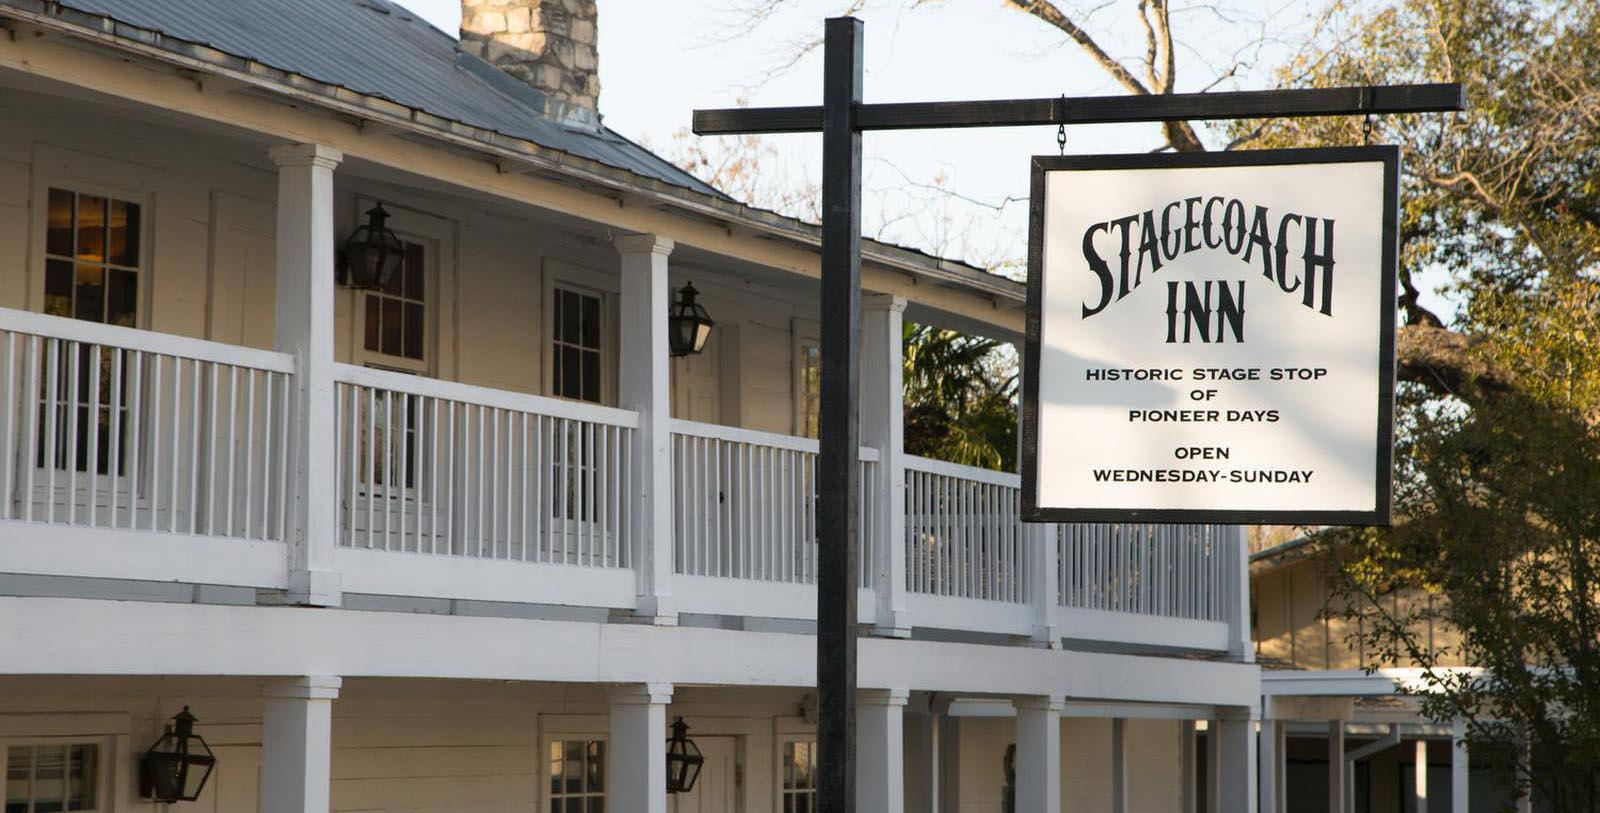 Image of Hotel Front Entrance and Hotel Sign at The Stagecoach Inn, 1852, Member of Historic Hotels of America, in Salado, Texas, Overview